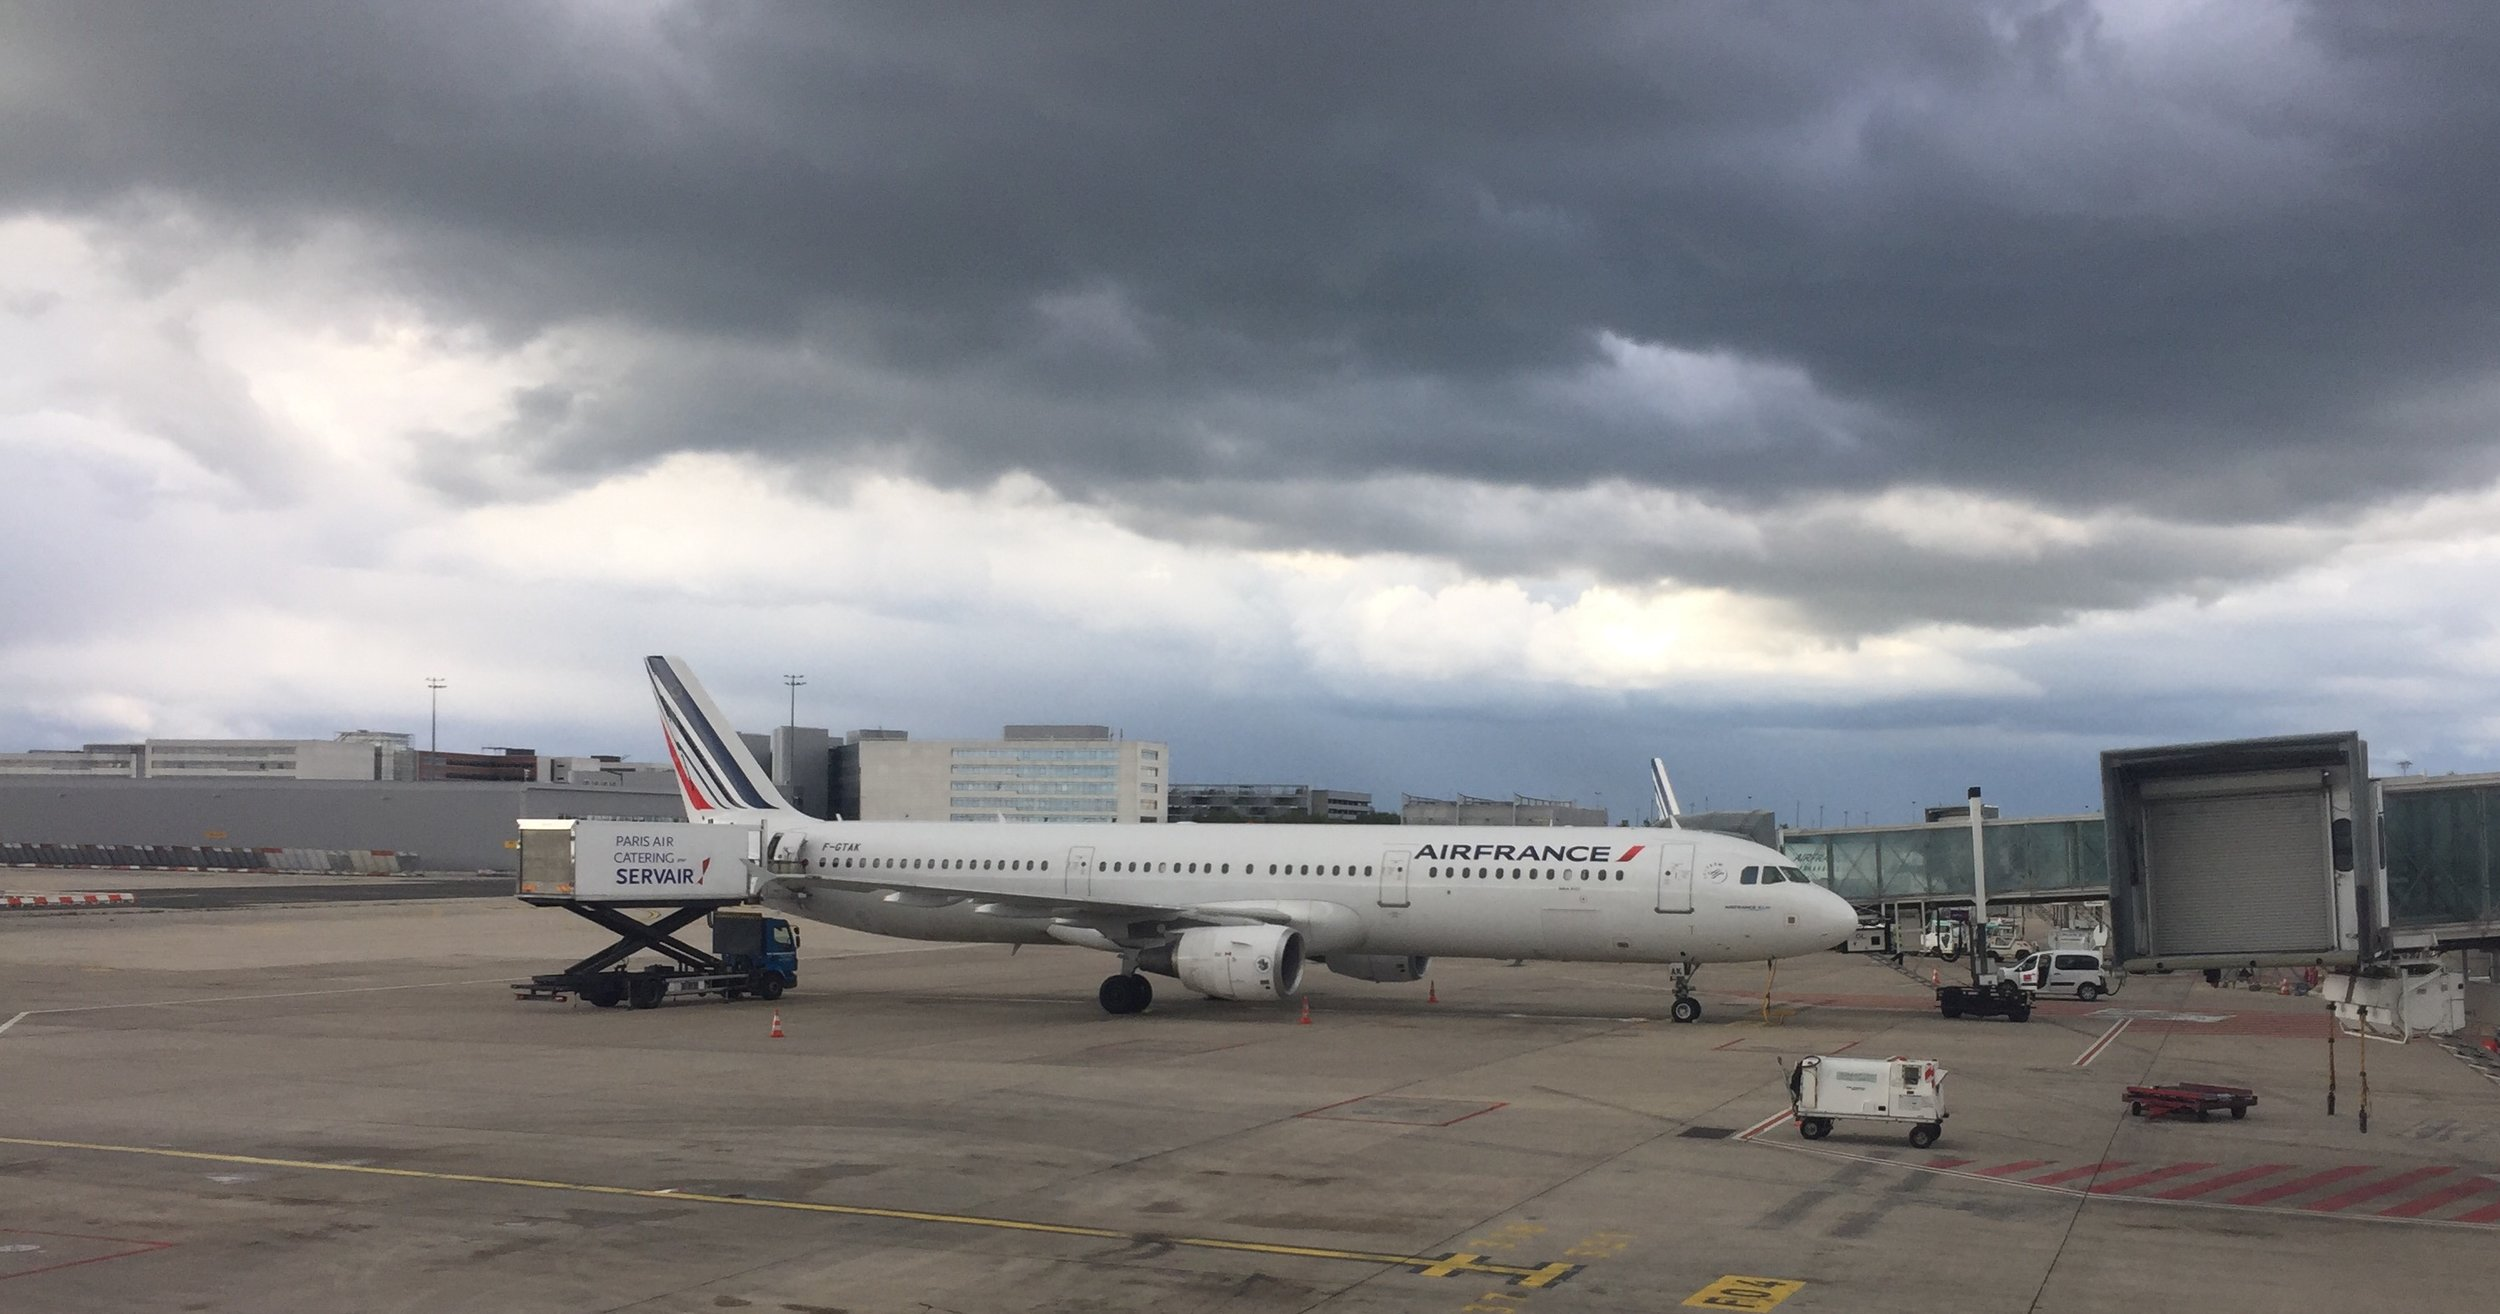 Touch down and taxiing at Charles de Gaulle airport...some threatening clouds there (it started to rain the moment I stepped out of the terminal)